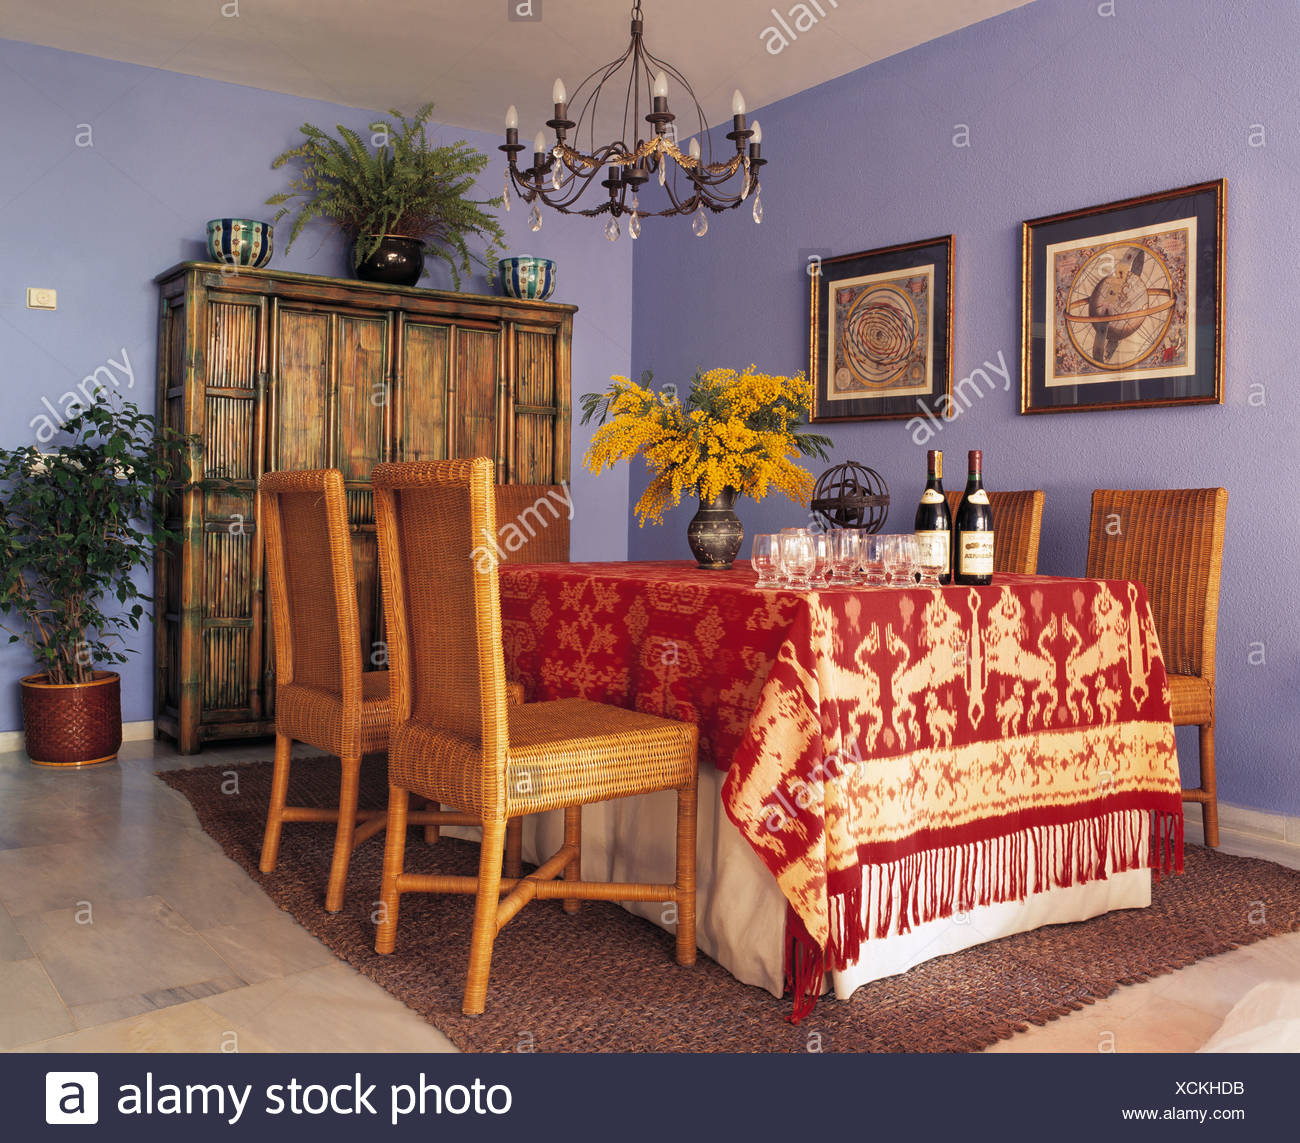 Opulent Red And Gold Cloth On Table In Blue Spanish Country Dining Room  With Wooden Chairs